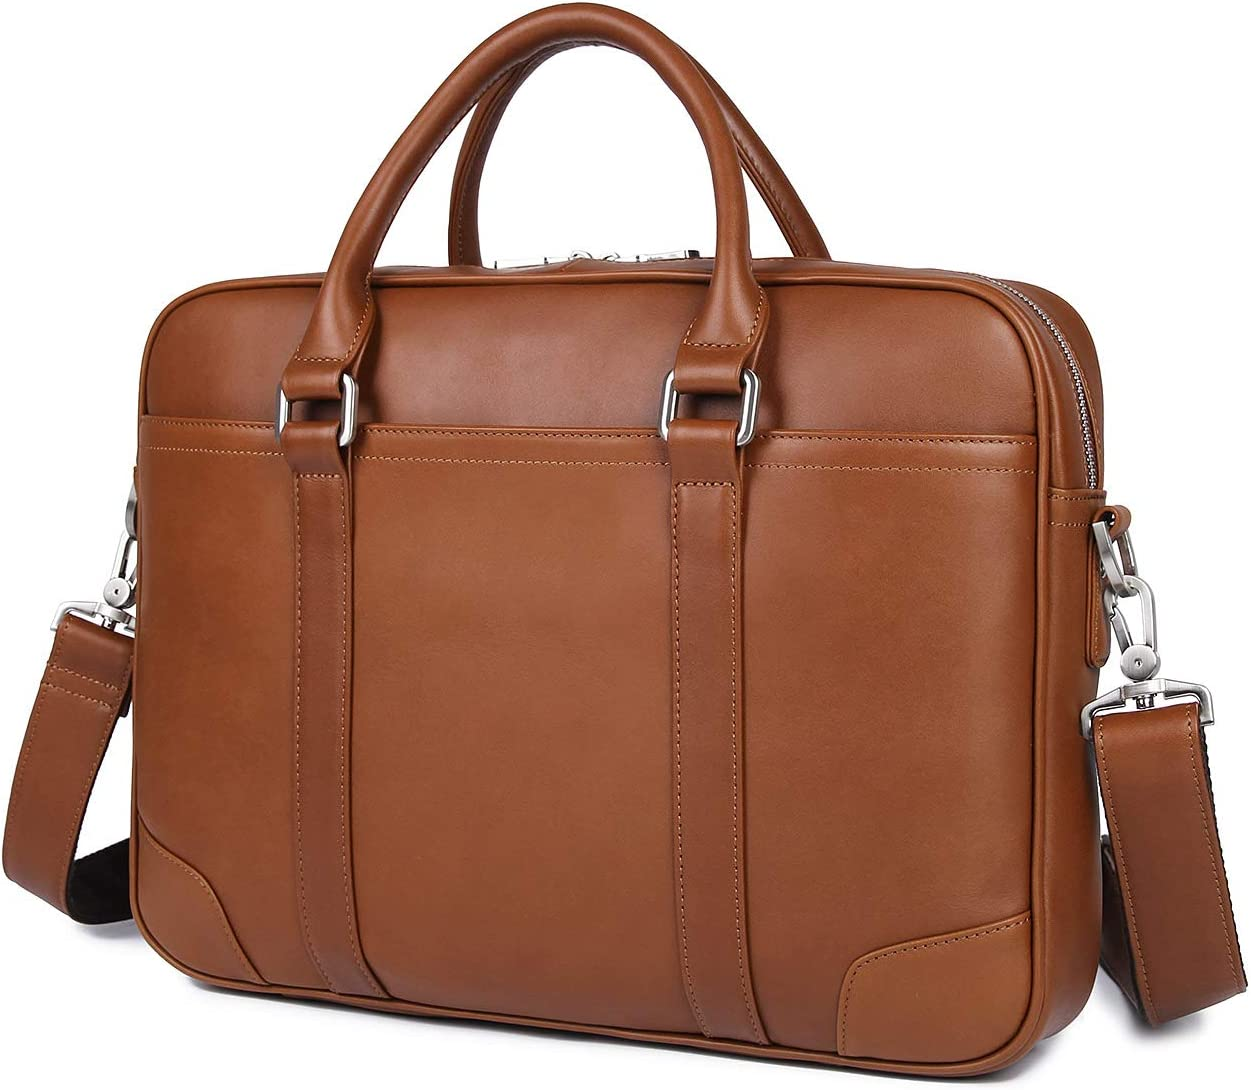 YOGCI Mens Leather Briefcase Messenger Laptop Bag for Business Work,Fits 13 14 15 Inch Computer (Brown)